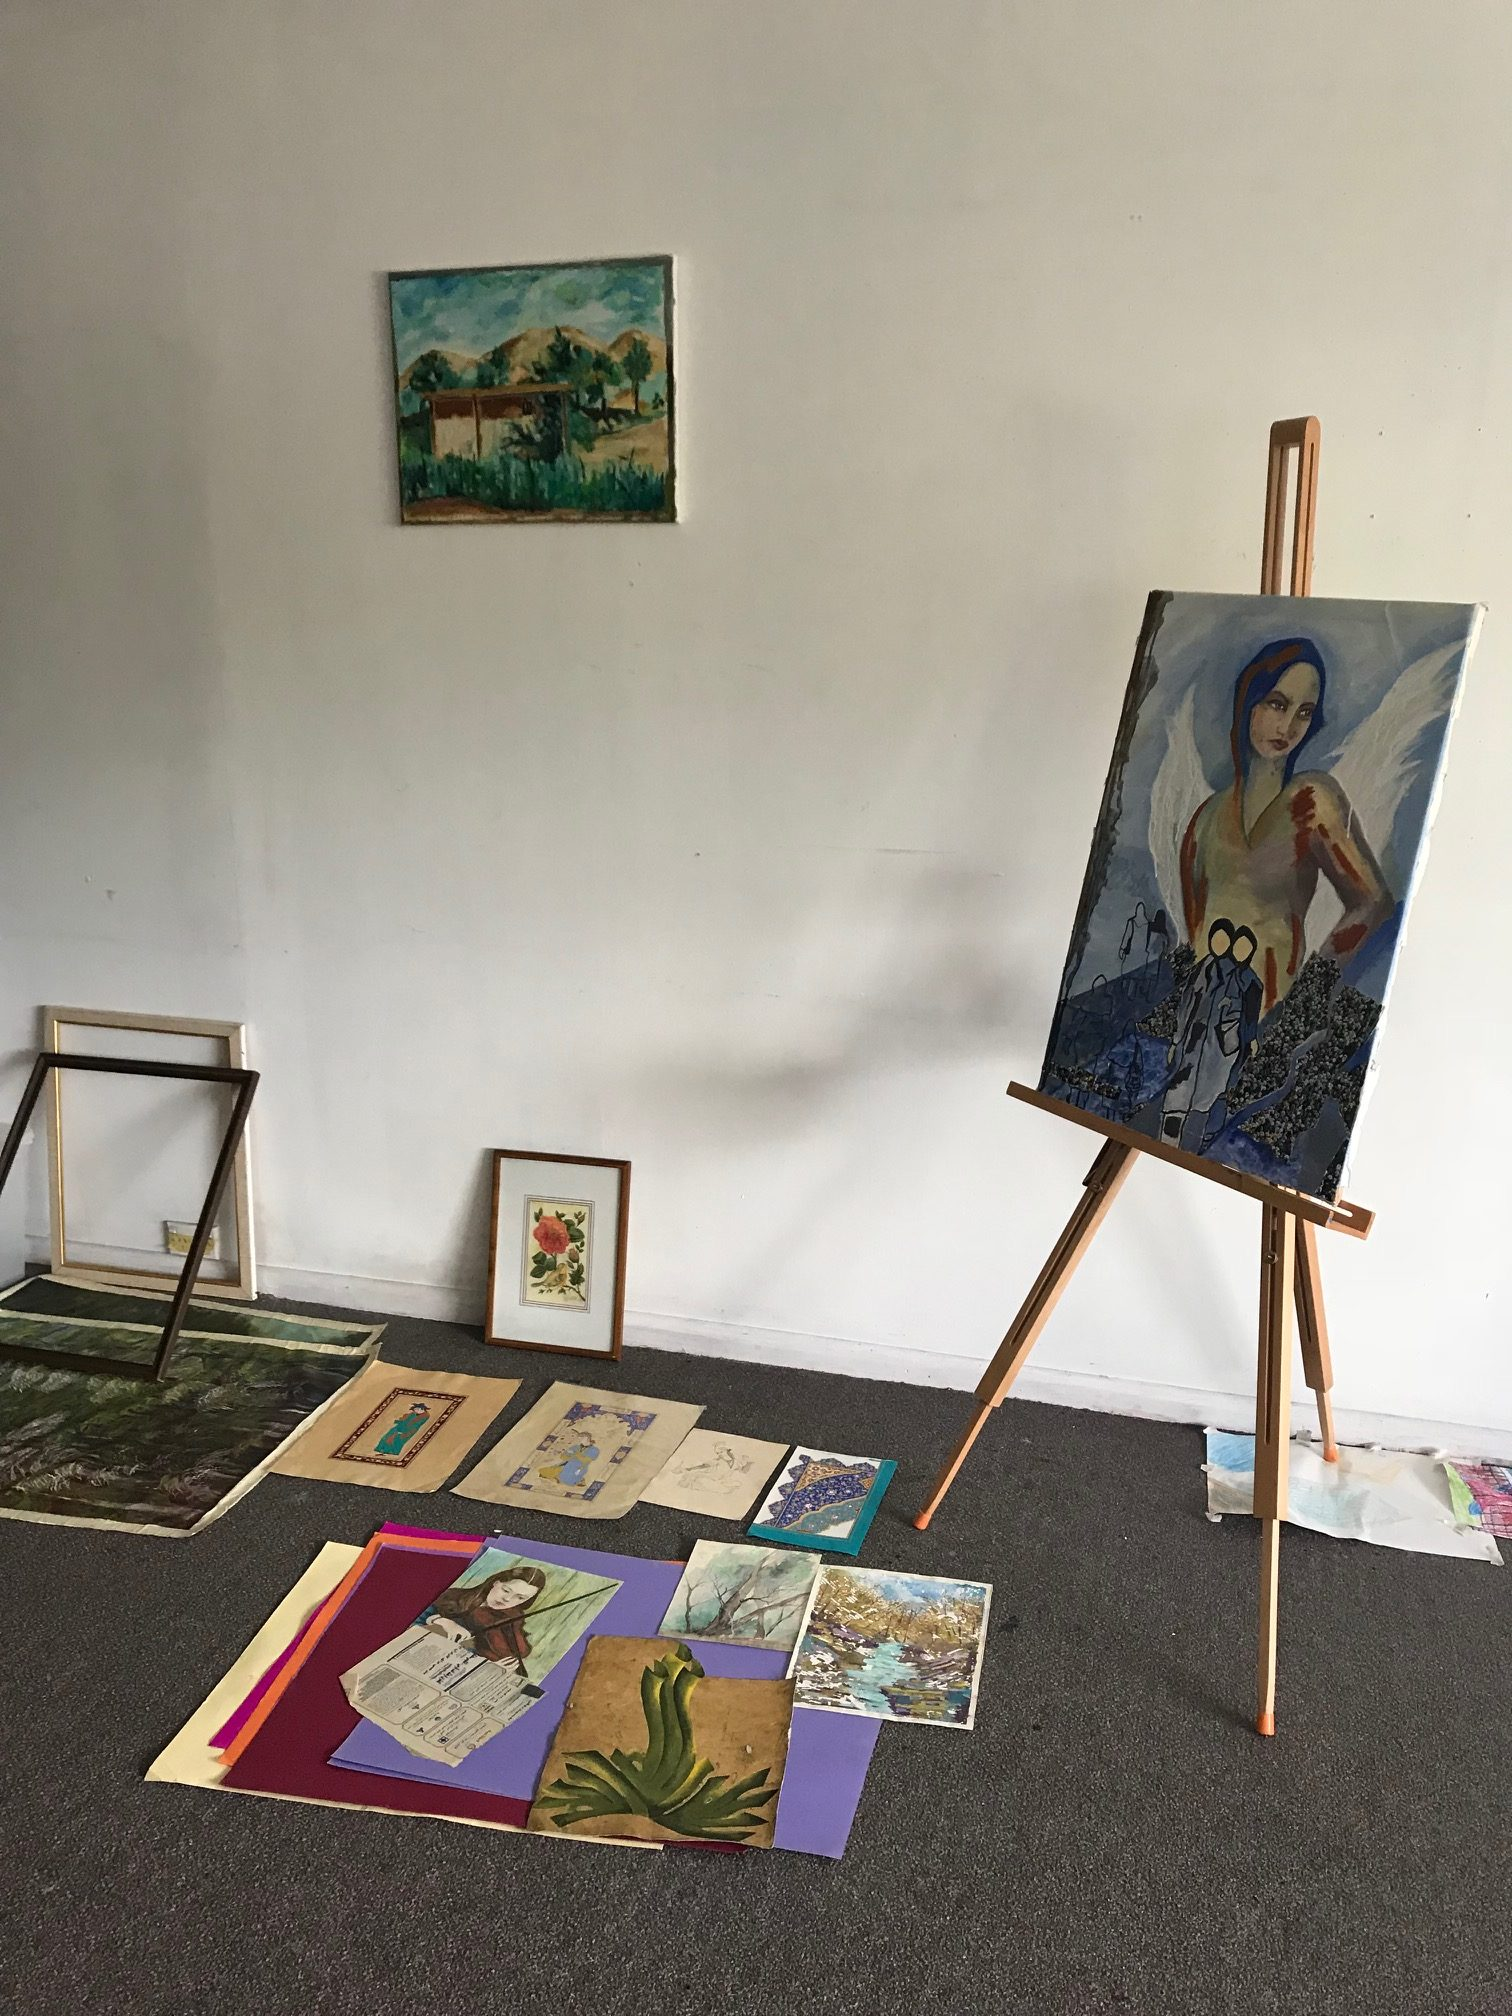 Miniature paintings on the ground, a painting on the wall and a painting on an easel of a woman